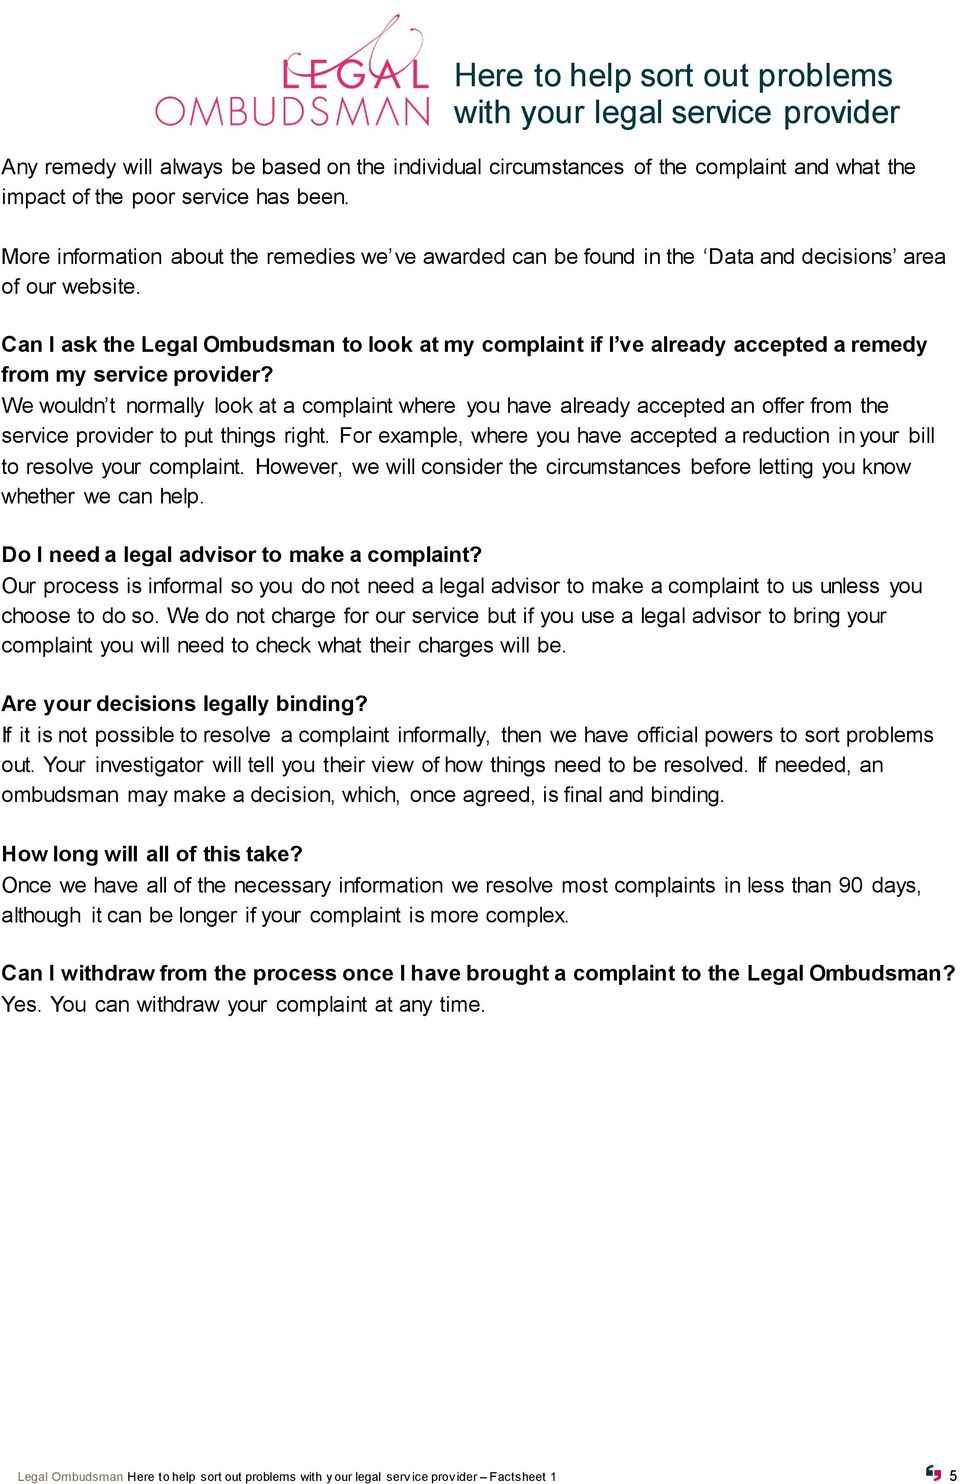 Can I ask the Legal Ombudsman to look at my complaint if I ve already accepted a remedy from my service provider?